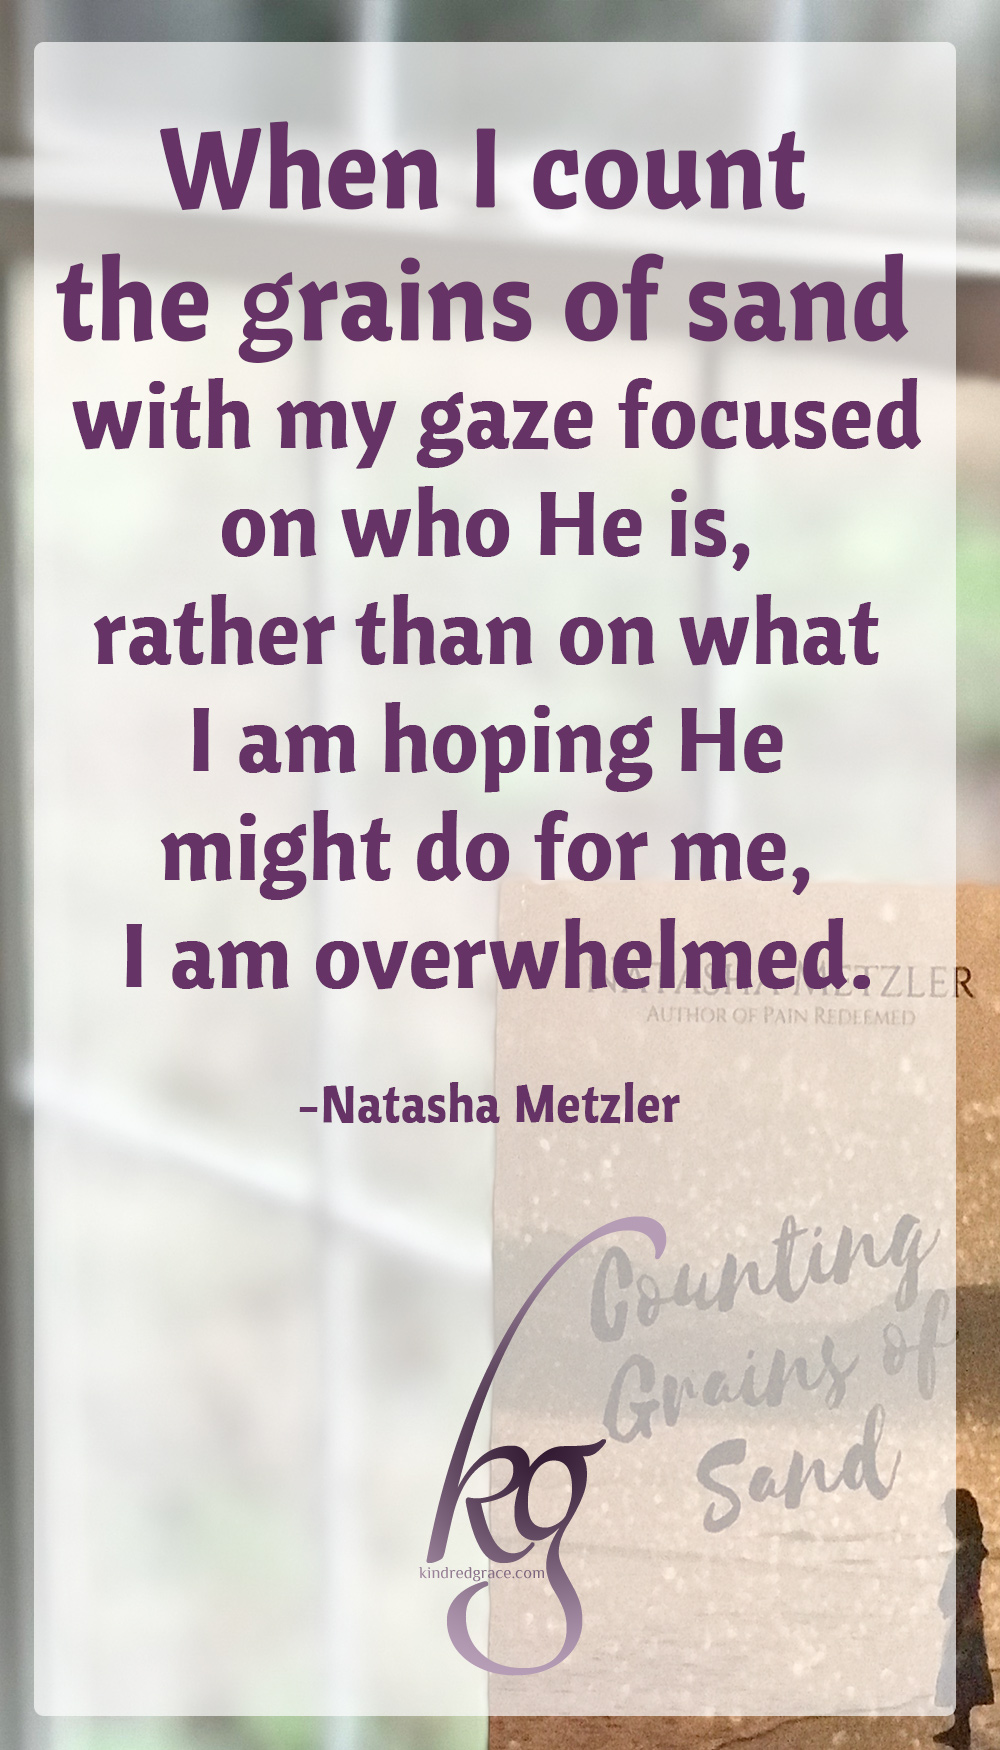 """When I take the time to recognize the vastness of His thoughts for me, when I count the grains of sand with my gaze focused on who He is, rather than on what I am hoping He might do for me, I am overwhelmed."" (Natasha Metzler in Counting Grains of Sand) via @KindredGrace"